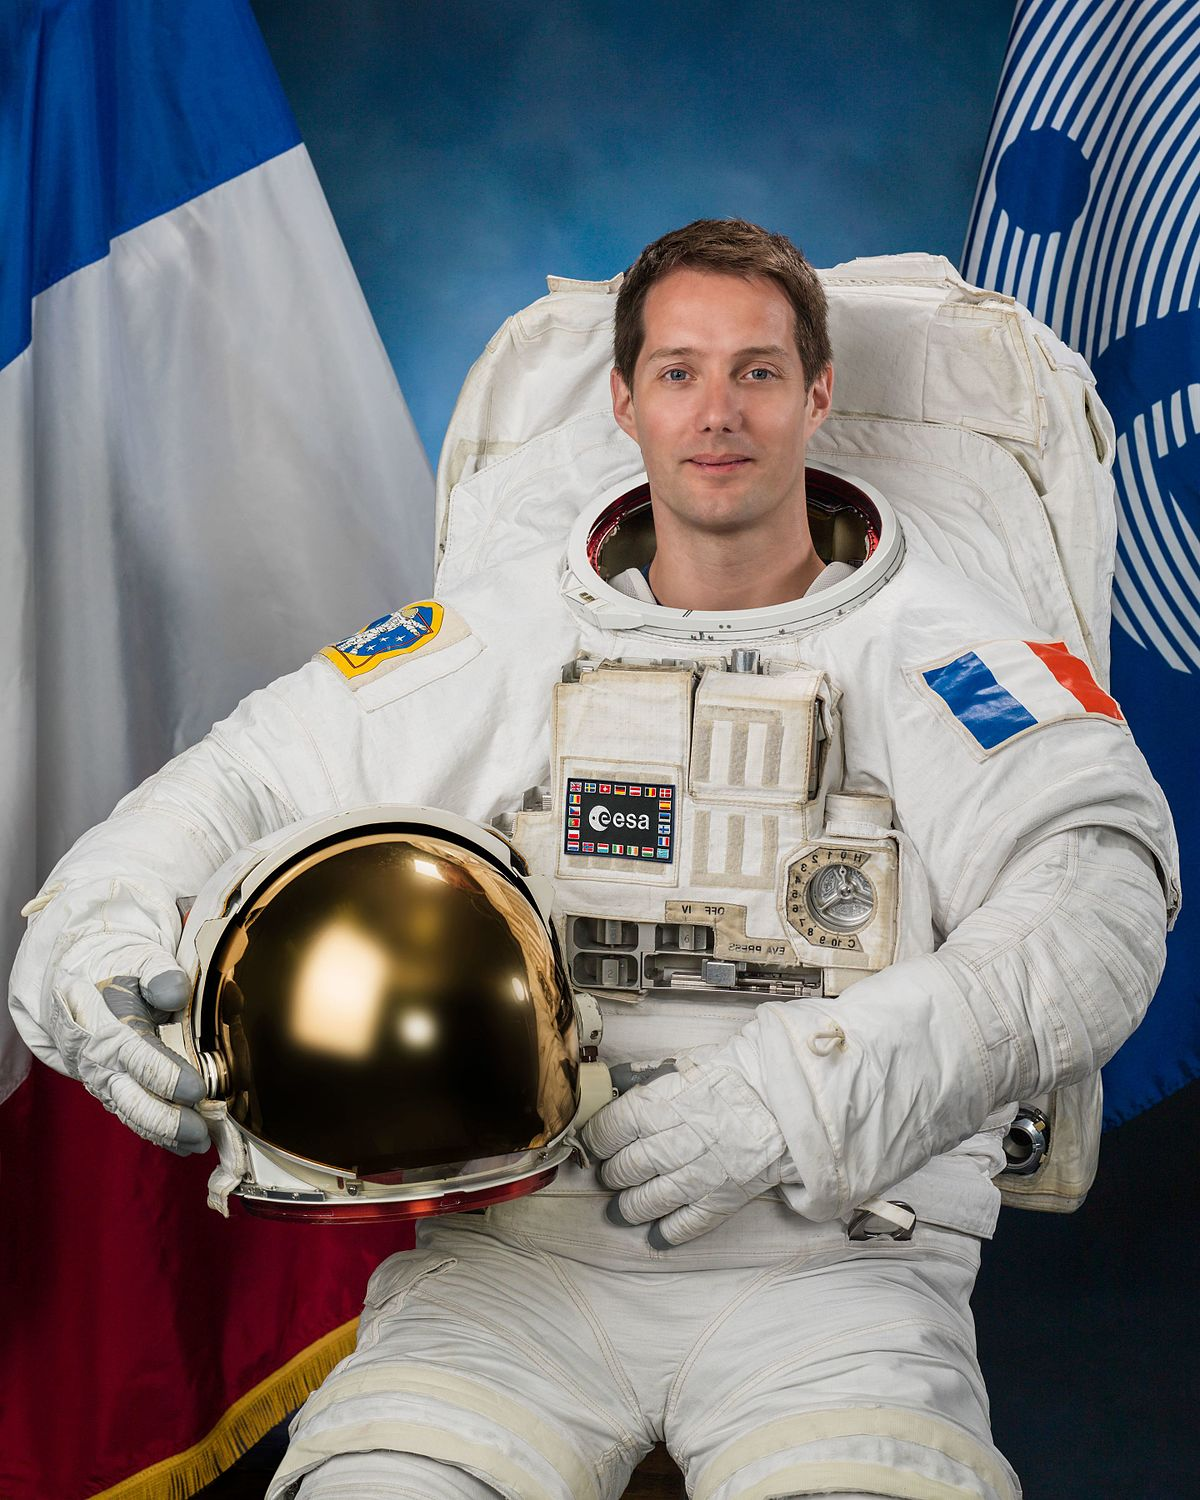 astronaut in space missions - photo #7